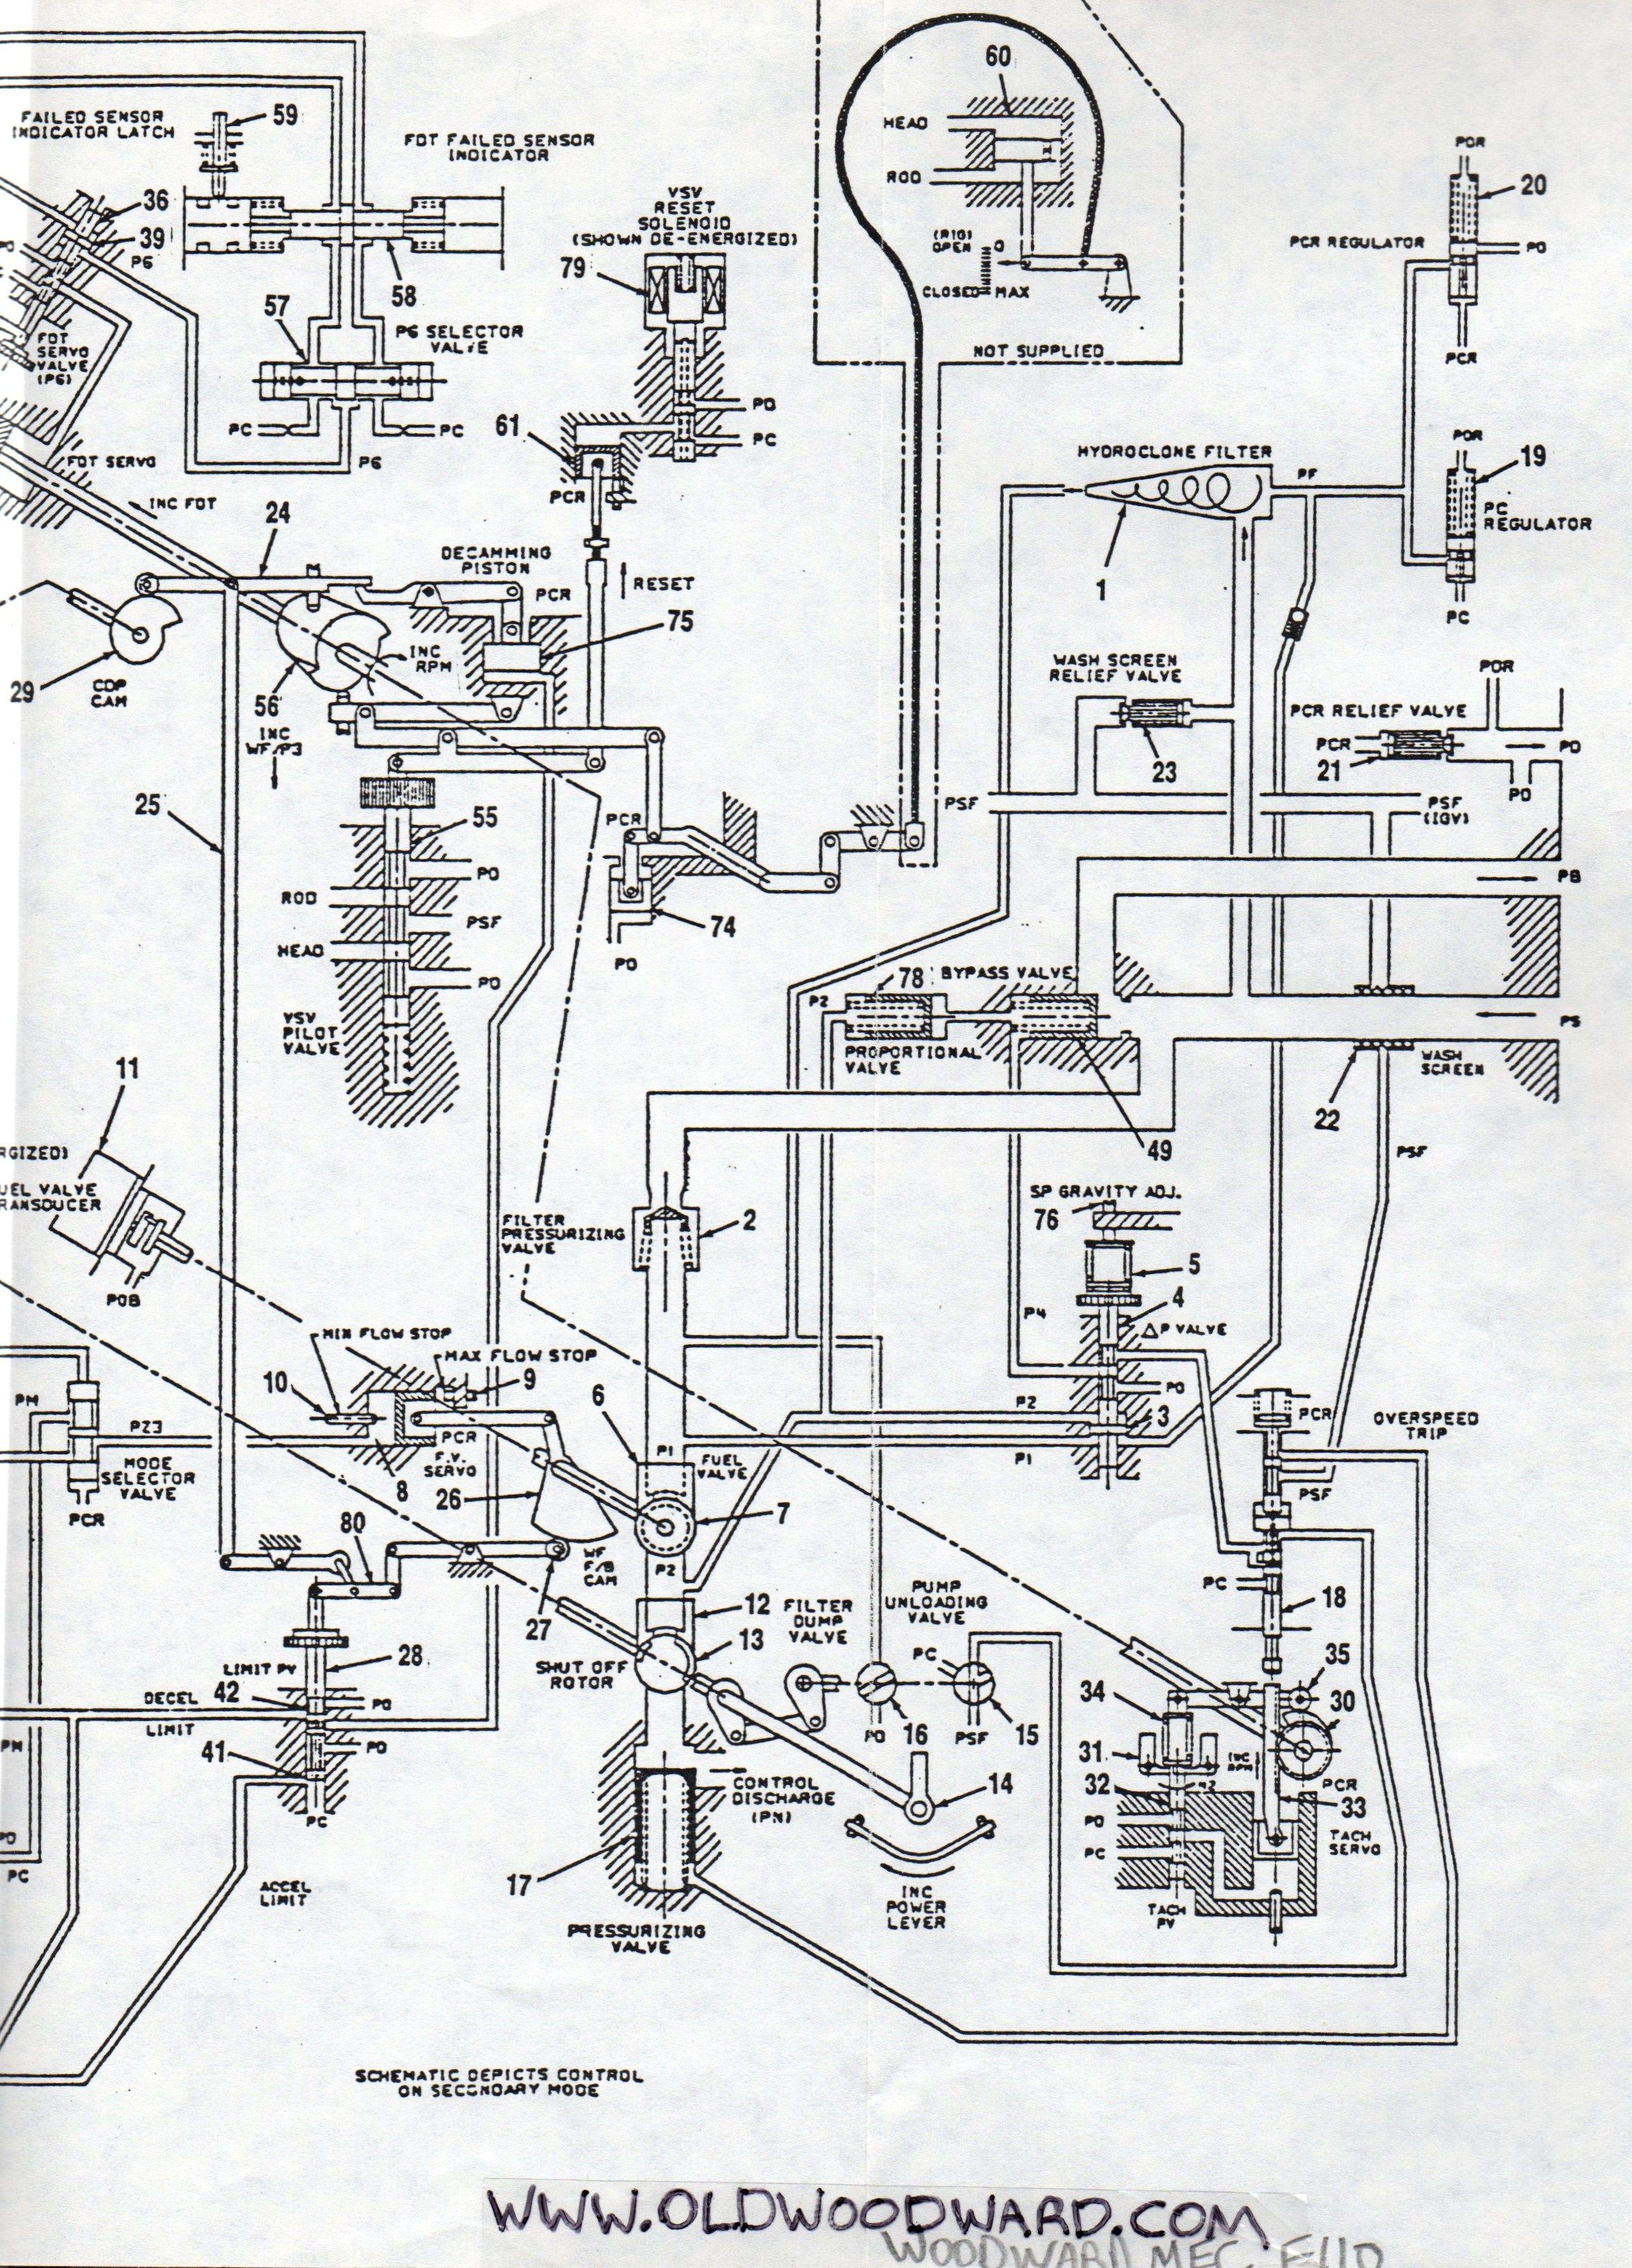 Woodward Governor Company's control system schematic for the General  Electric F110 series jet engine.